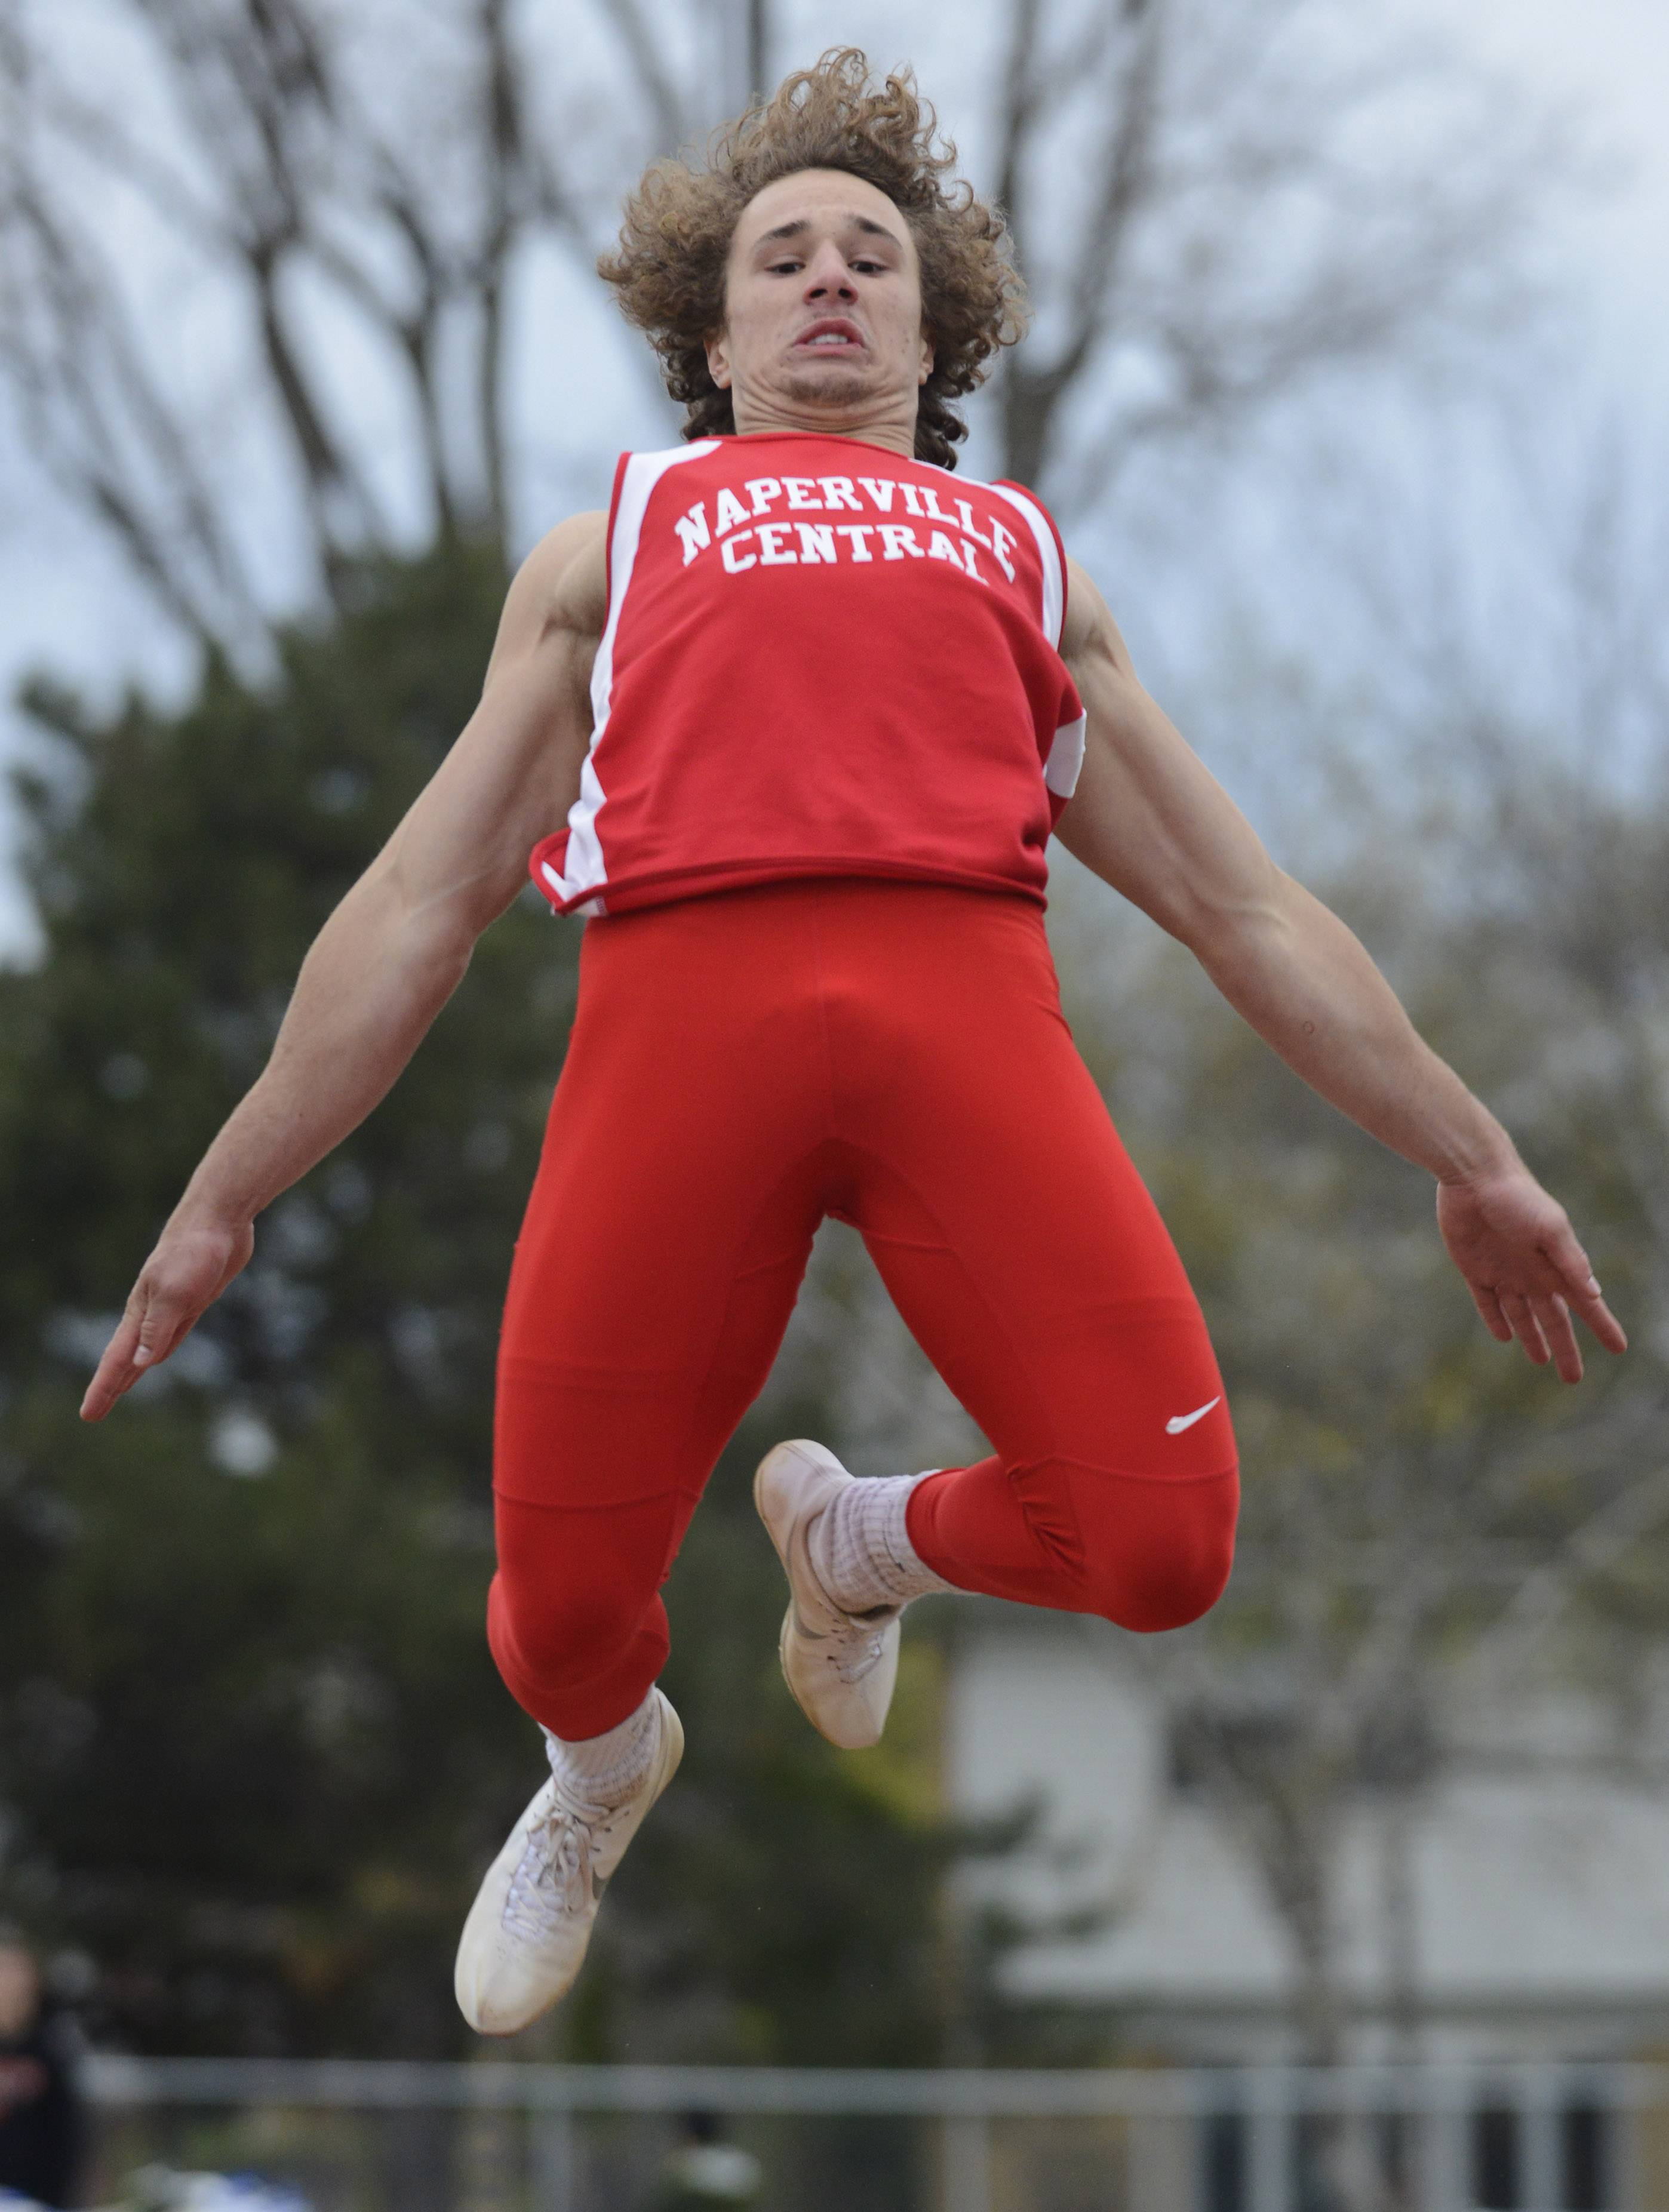 Naperville Central's Ben Andreas competes in the long jump during the Wanner Invitational at Prospect on Friday.